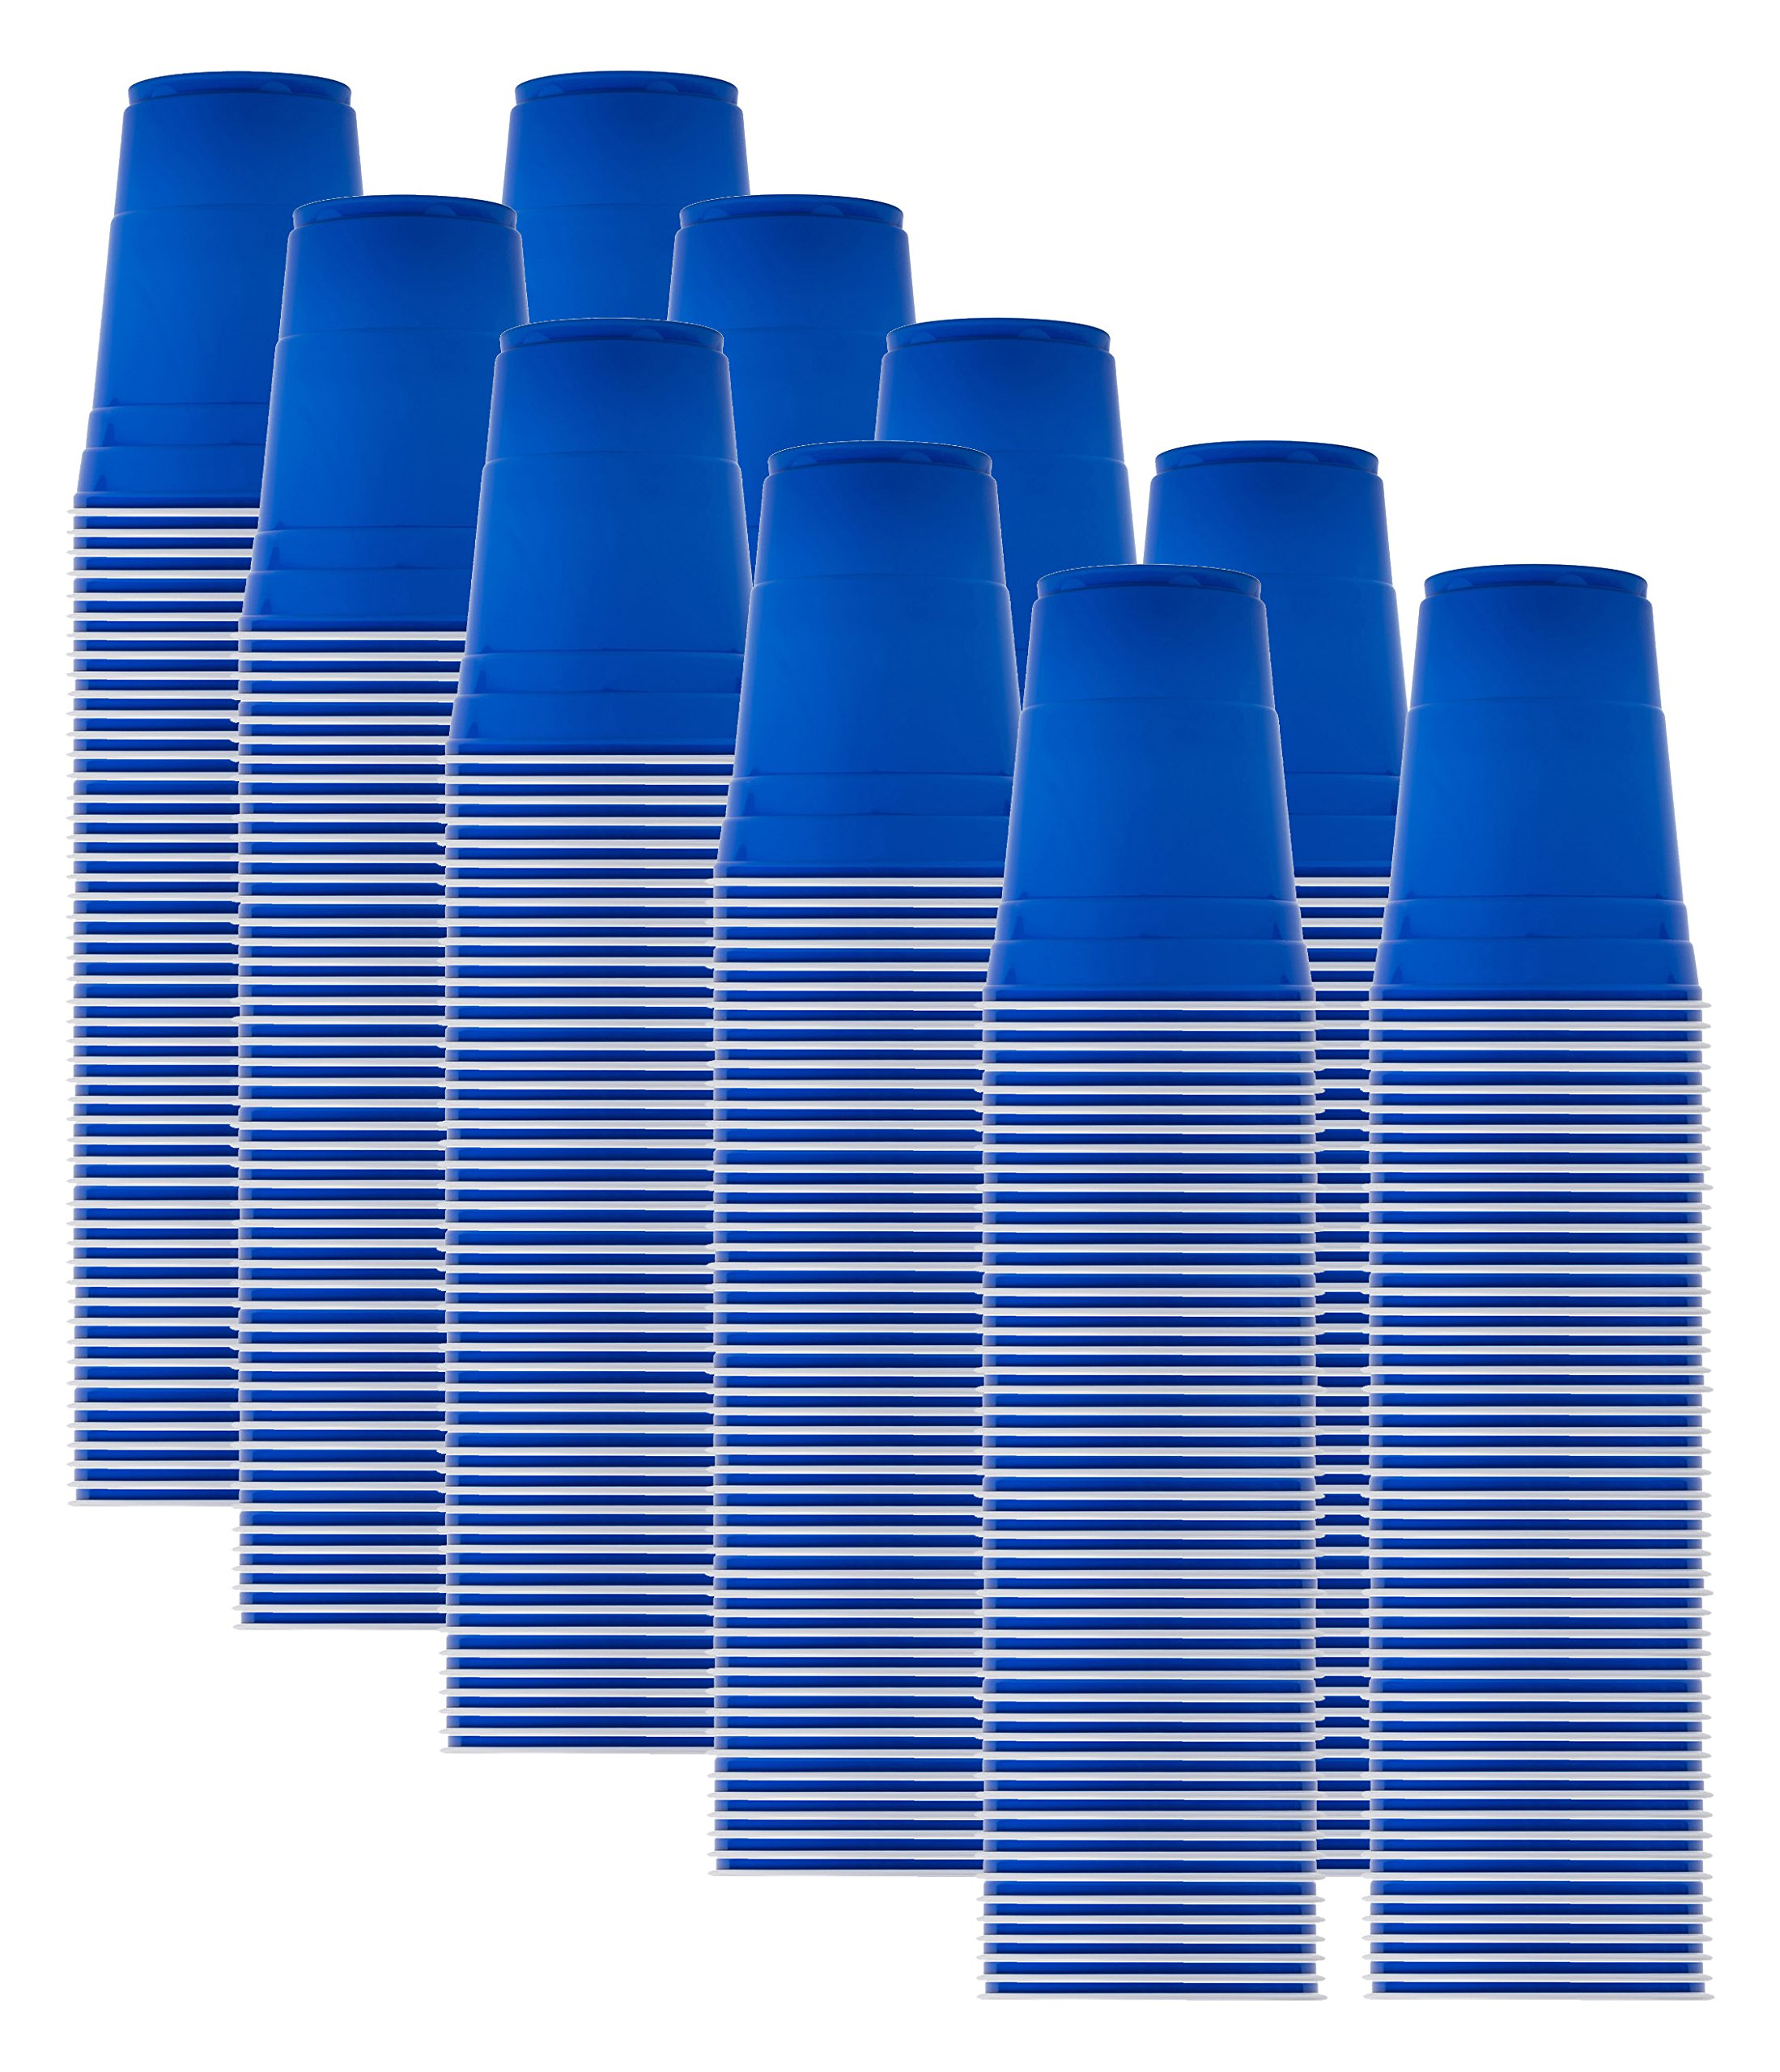 Solo Blue Cup Cold Plastic Party Cups, Round Style, 16 Ounce, 500 Pack